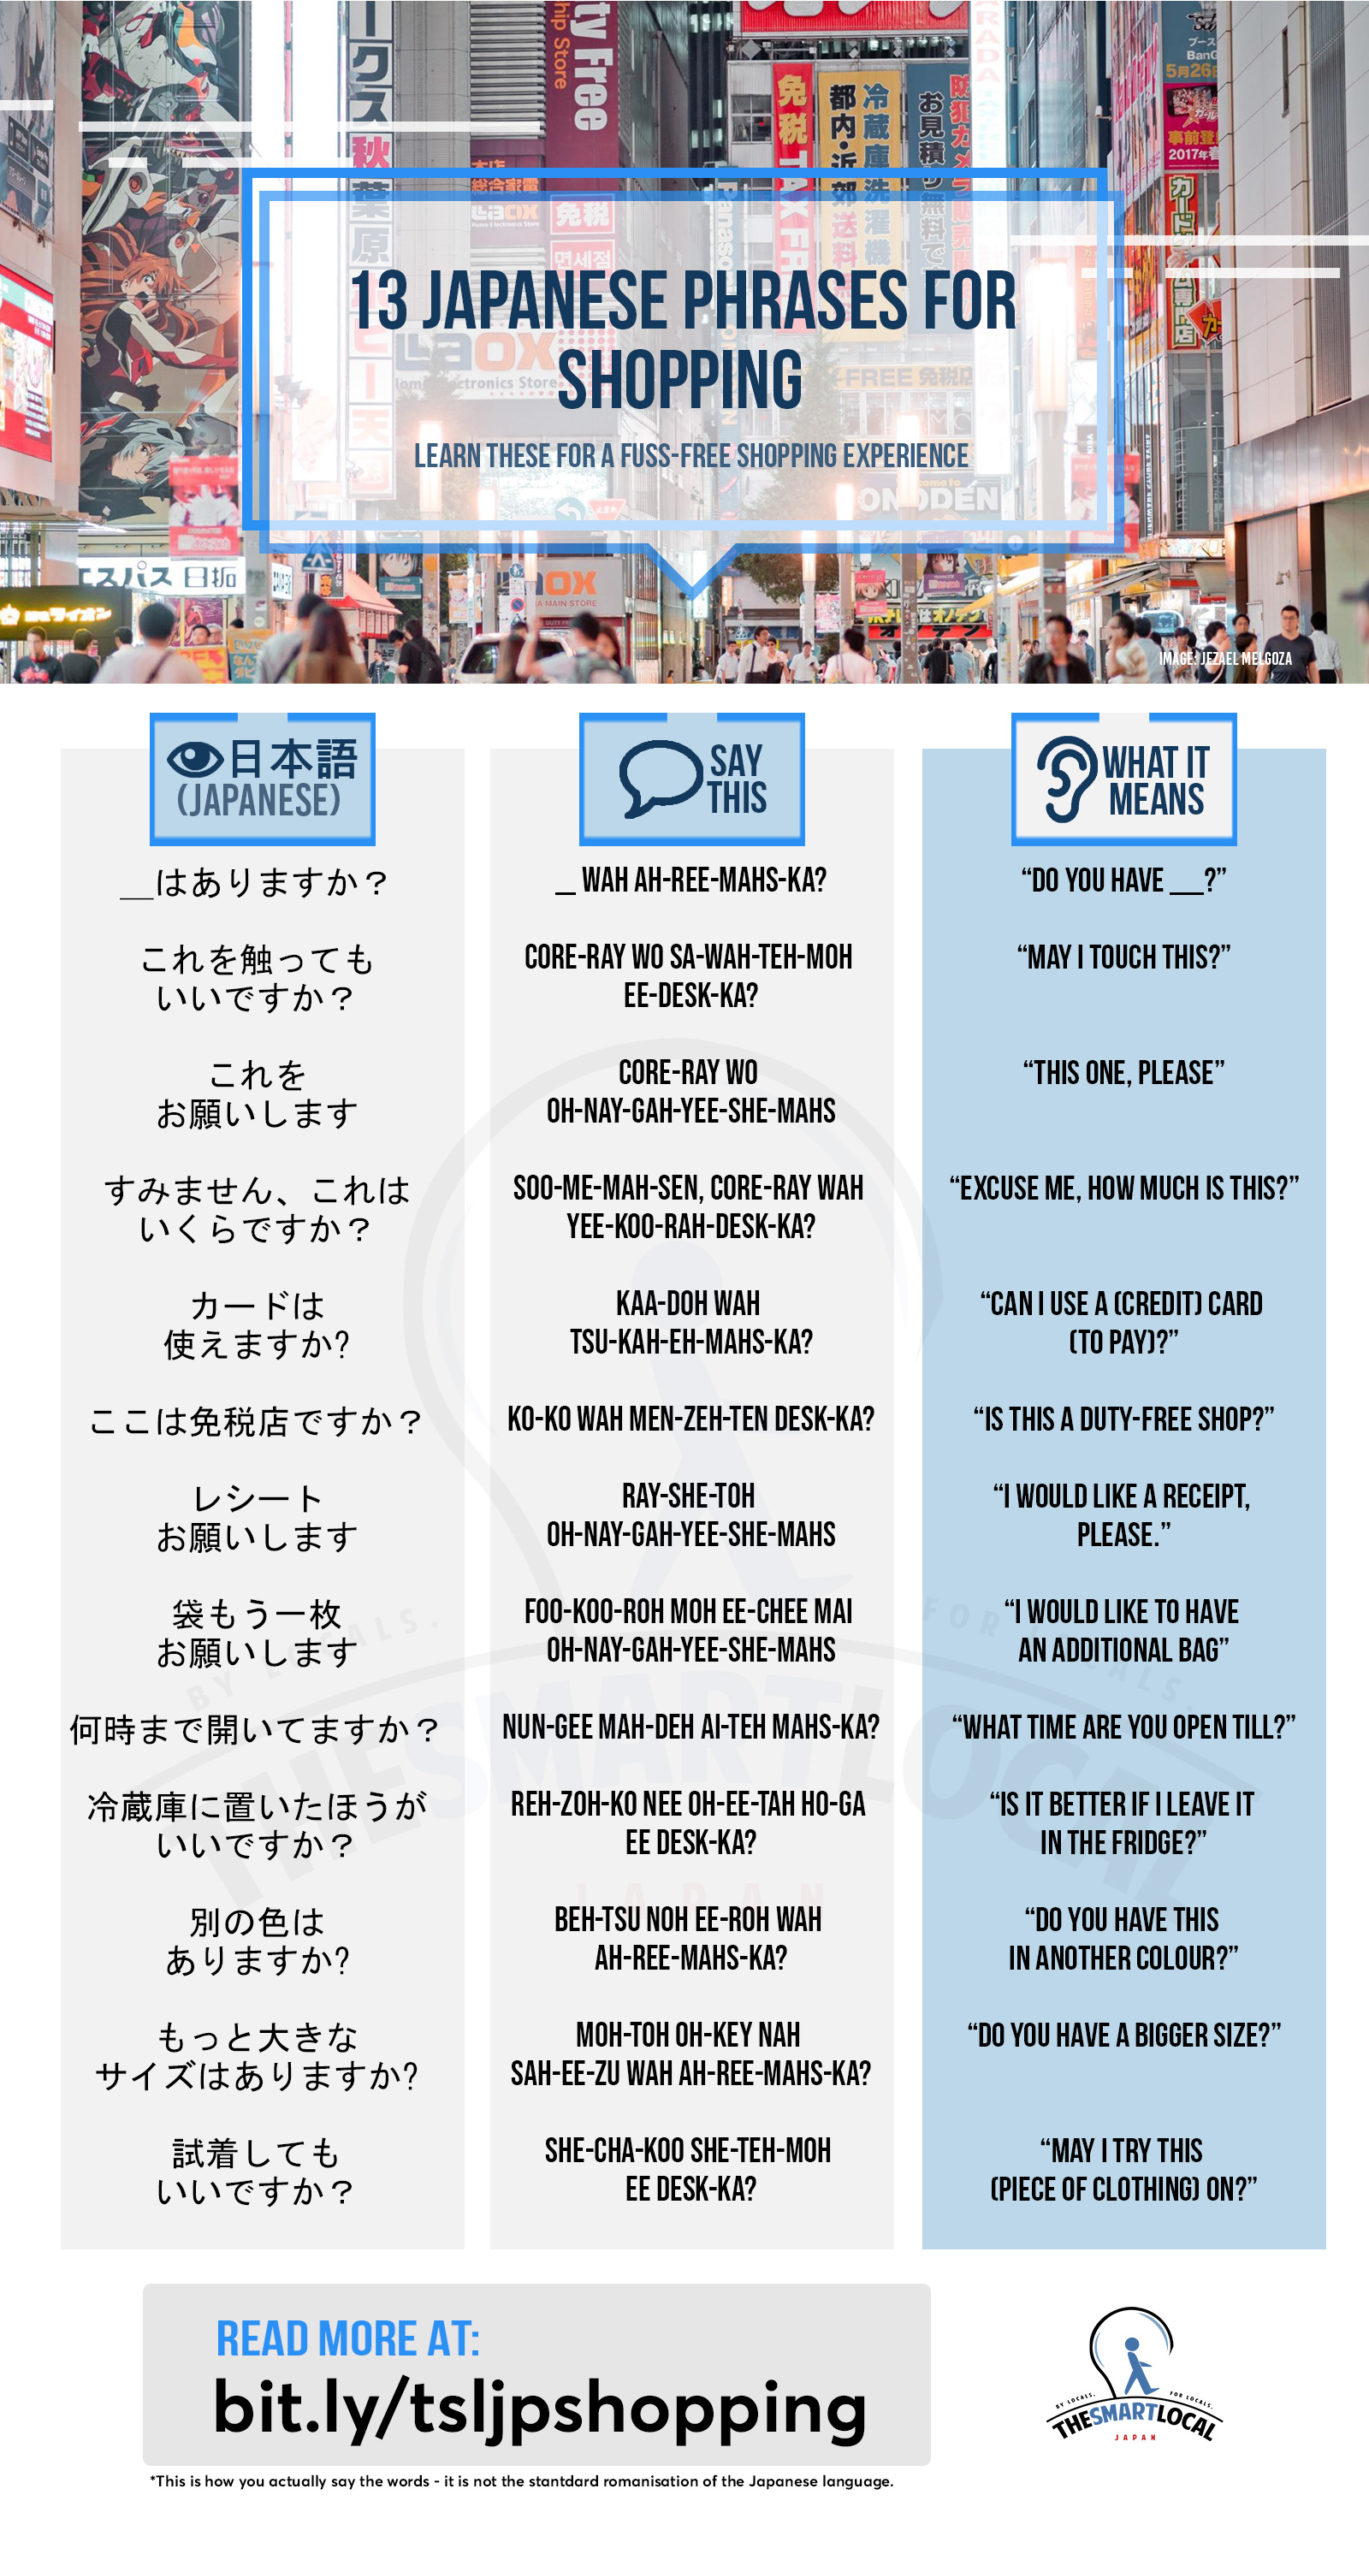 japanese phrases for shopping infographic